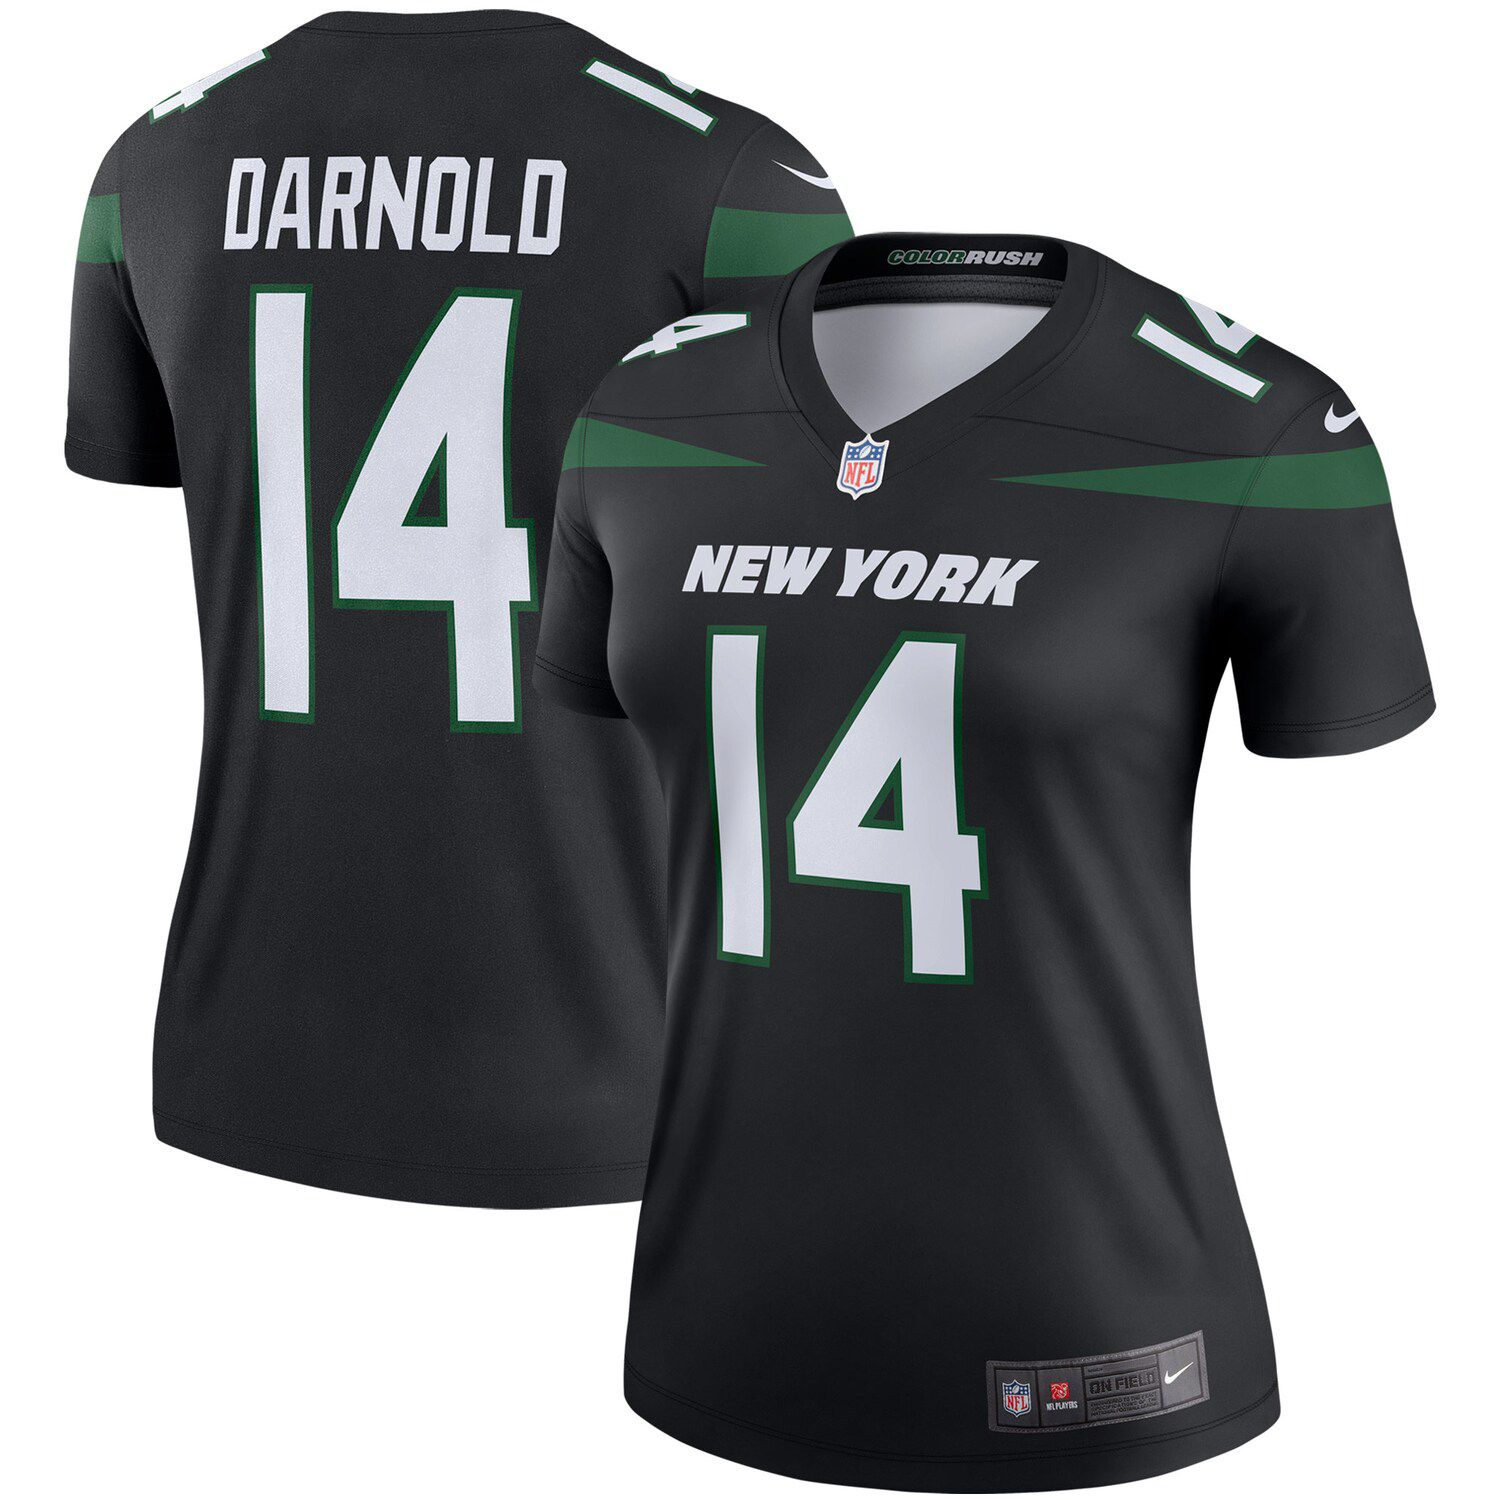 ny jets color rush jersey